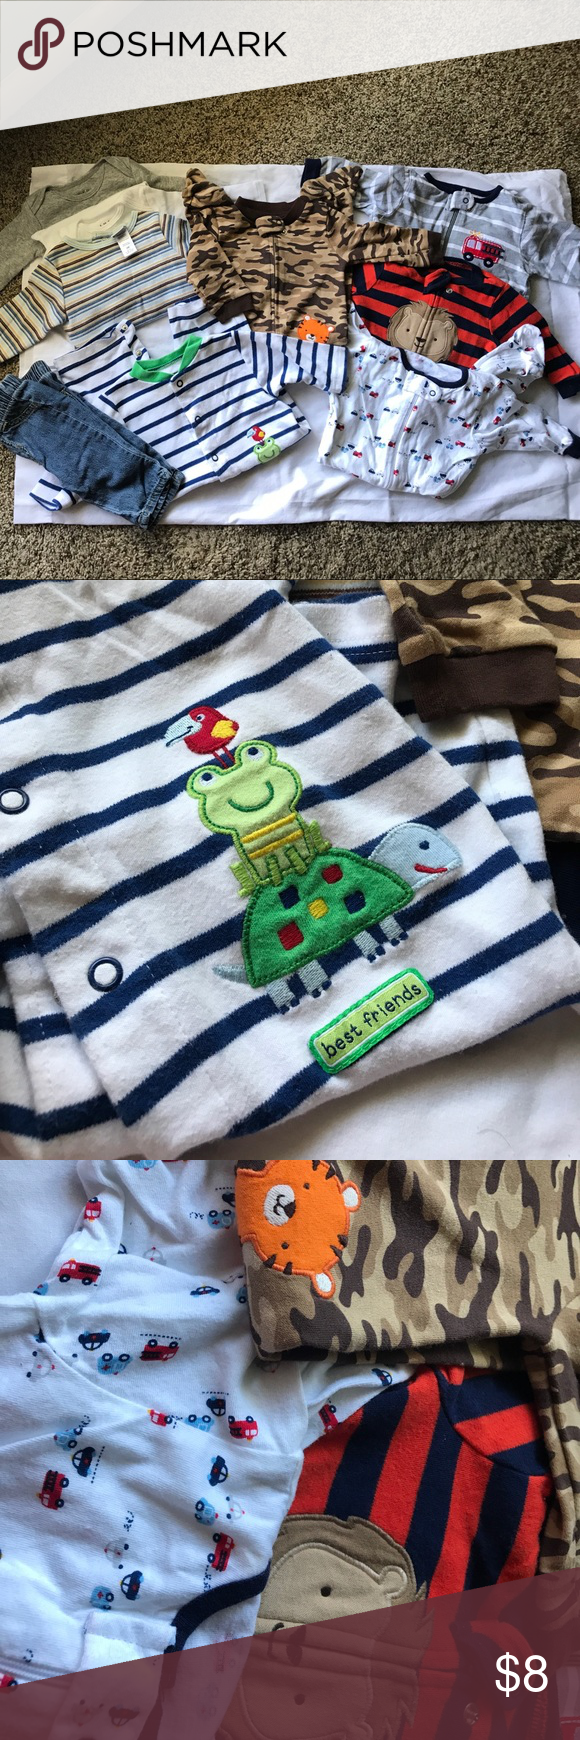 Baby boys long sleeve bundle 0-3mnth bundle 3 long sleeve onesies,4 sleepers,1 pair jeans and one footless button up one piece. Carters, circo, Gerber, child of mine Other